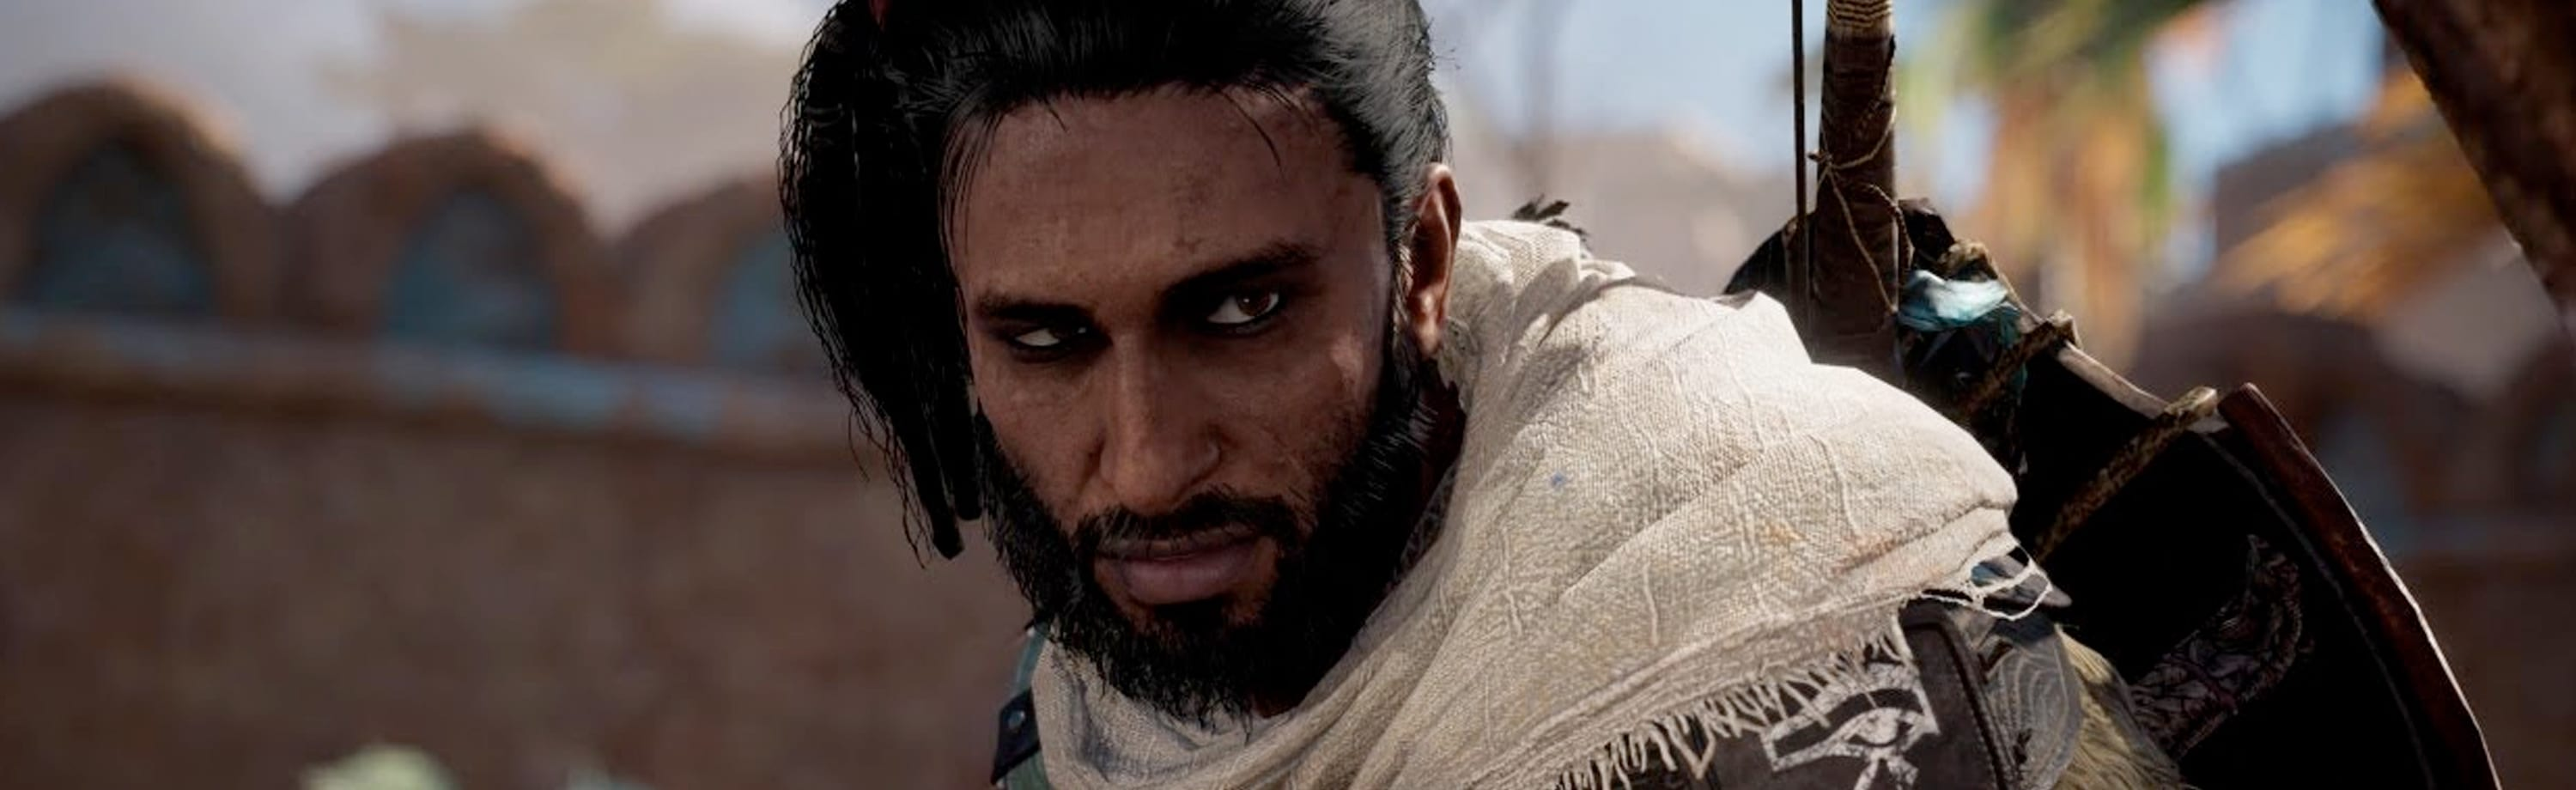 Bayek of Siwa from Assassins Creed Origins